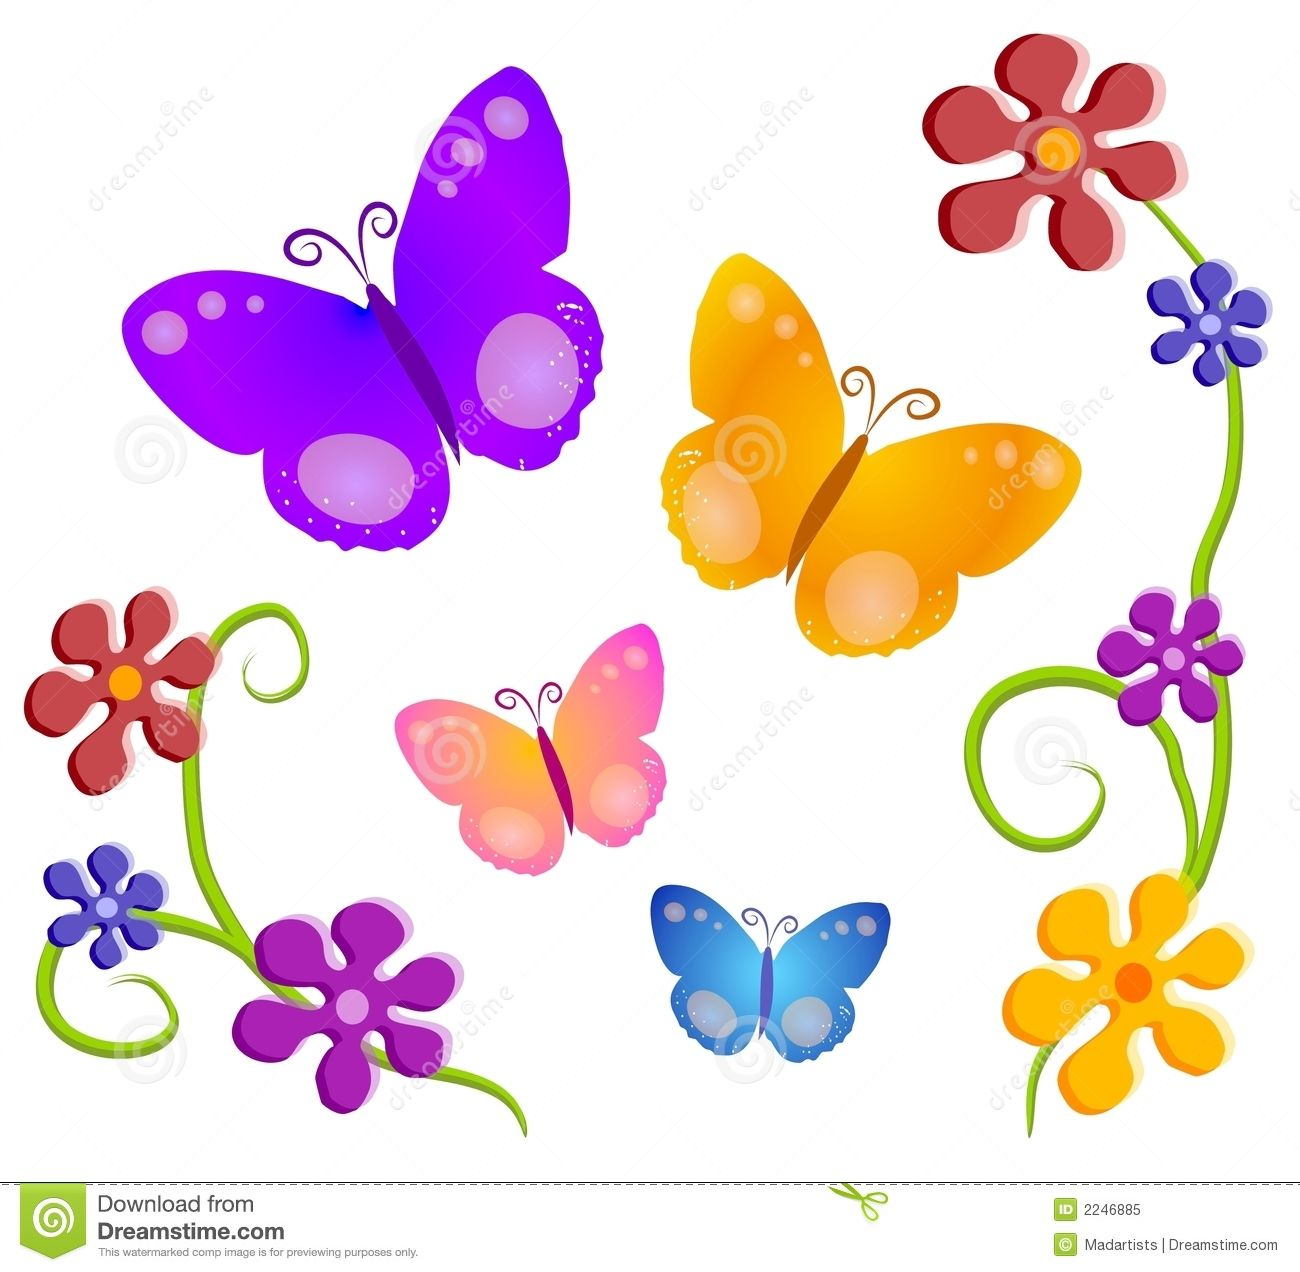 cartoon flowers clip art butterfly and flowers illustration in rh pinterest com butterflies and flowers clipart black and white clipart butterflies and flowers